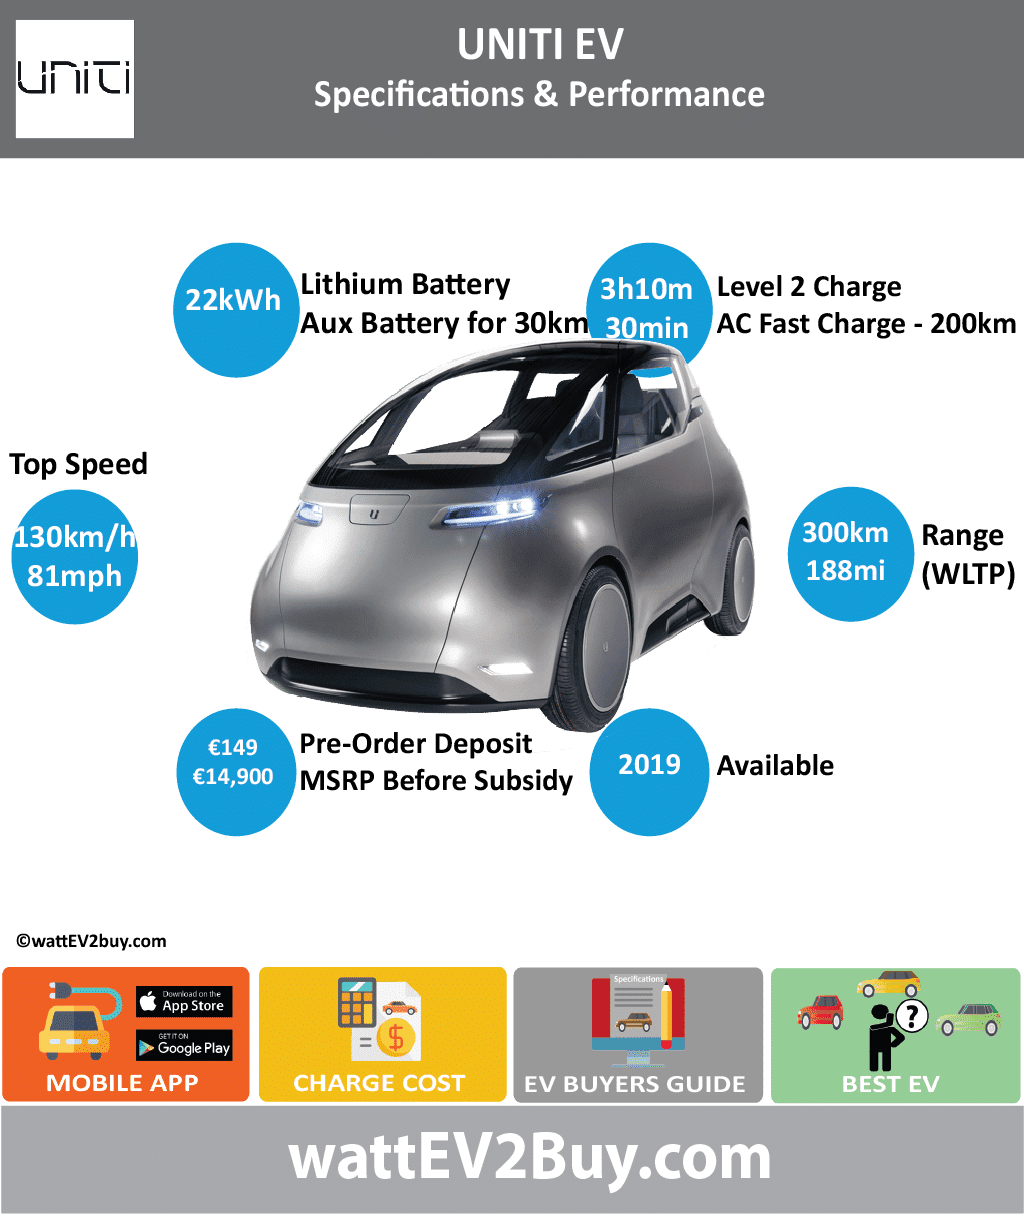 UNITI EV SPECS Brand UNITI Model UNITI EV Fuel_Type BEV Chinese Name Model Code Batch Battery Capacity kWh 22 Energy Density Wh/kg Battery Electric Range - at constant 38mph Battery Electric Range - at constant 60km/h Battery Electric Range - NEDC km Battery Electric Range - NEDC Mi Battery Electric Range - EPA Mi 188 Battery Electric Range - EPA km 300.8 Electric Top Speed - mph 81.25 Electric Top Speed - km/h 130 Acceleration 0 - 100km/h sec Onboard Charger kW LV 2 Charge Time (Hours) 3h 10min LV 3 Charge Time (min to 80%) Energy Consumption kWh/km Max Power - hp (Electric Max) Max Power - kW (Electric Max) CHINA MSRP (before incentives & destination) US MSRP (before incentives & destination) MSRP after incentives Lenght (mm) Width (mm) Height (mm) Wheelbase (mm) Lenght (inc) Width (inc) Height (inc) Wheelbase (inc) Curb Weight (kg)